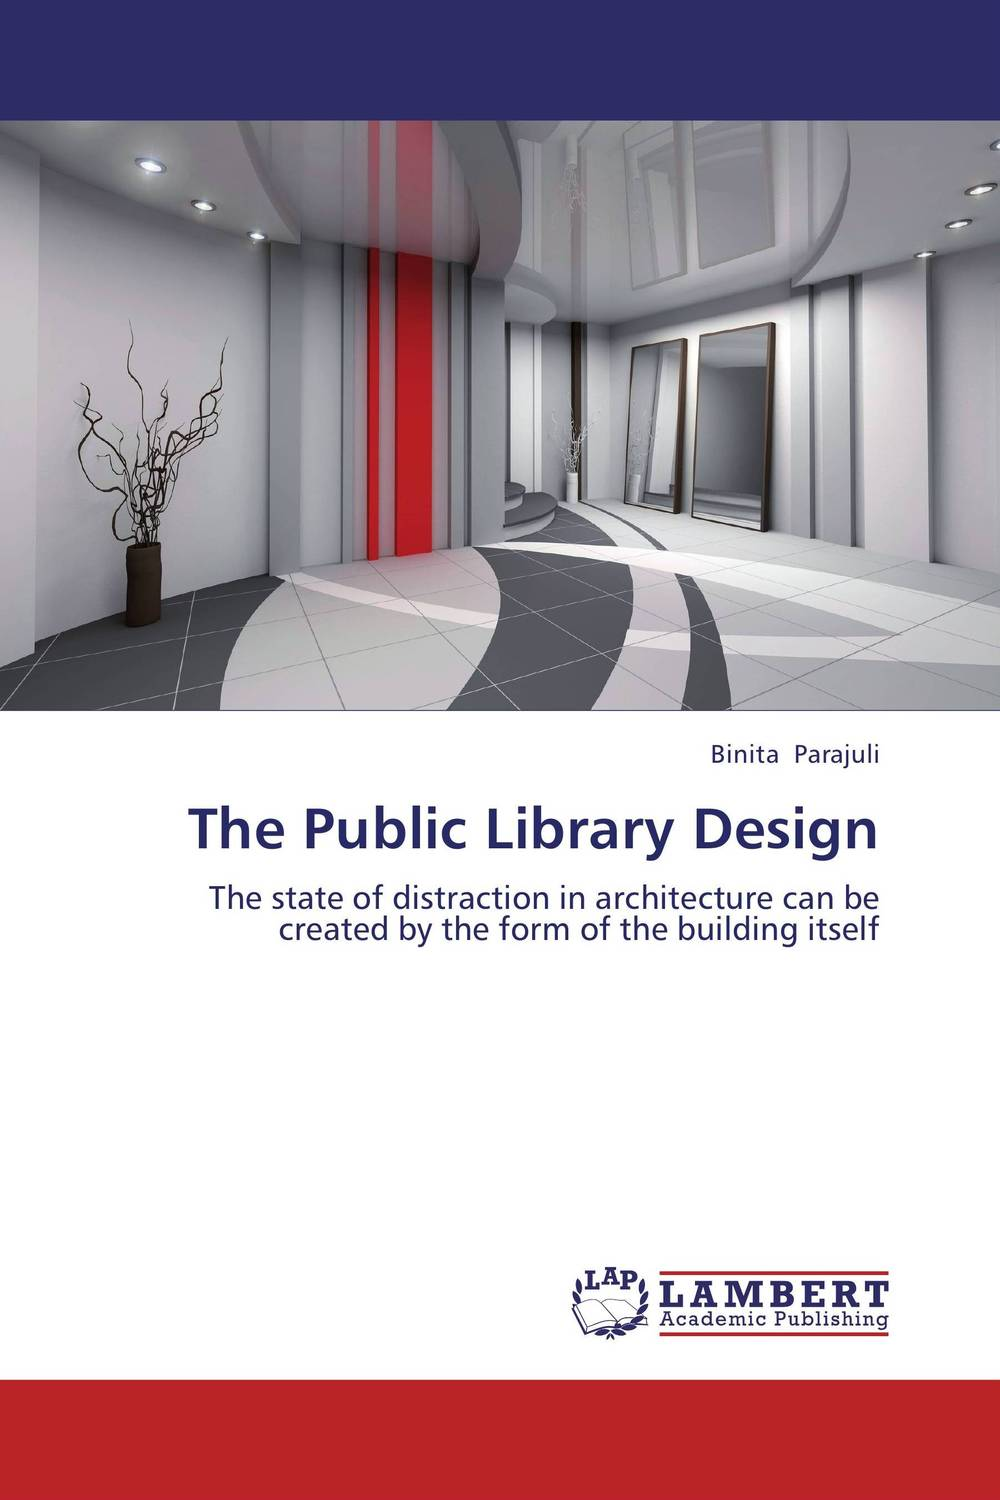 The Public Library Design affair of state an